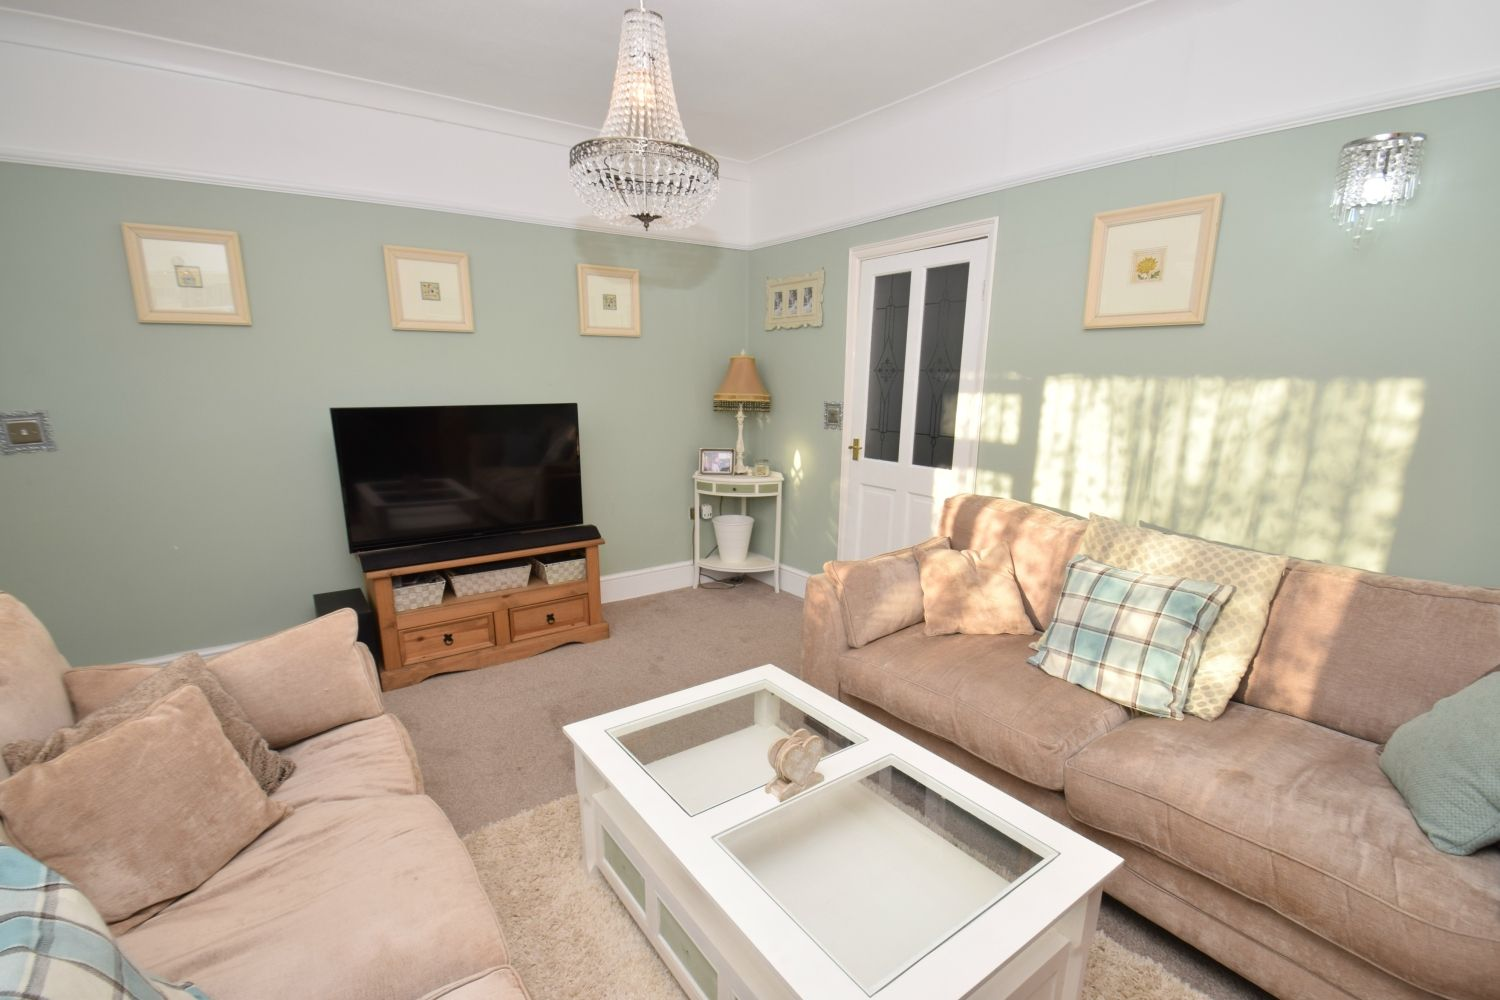 4 bed semi-detached for sale in Upland Grove, Bromsgrove, B61 4